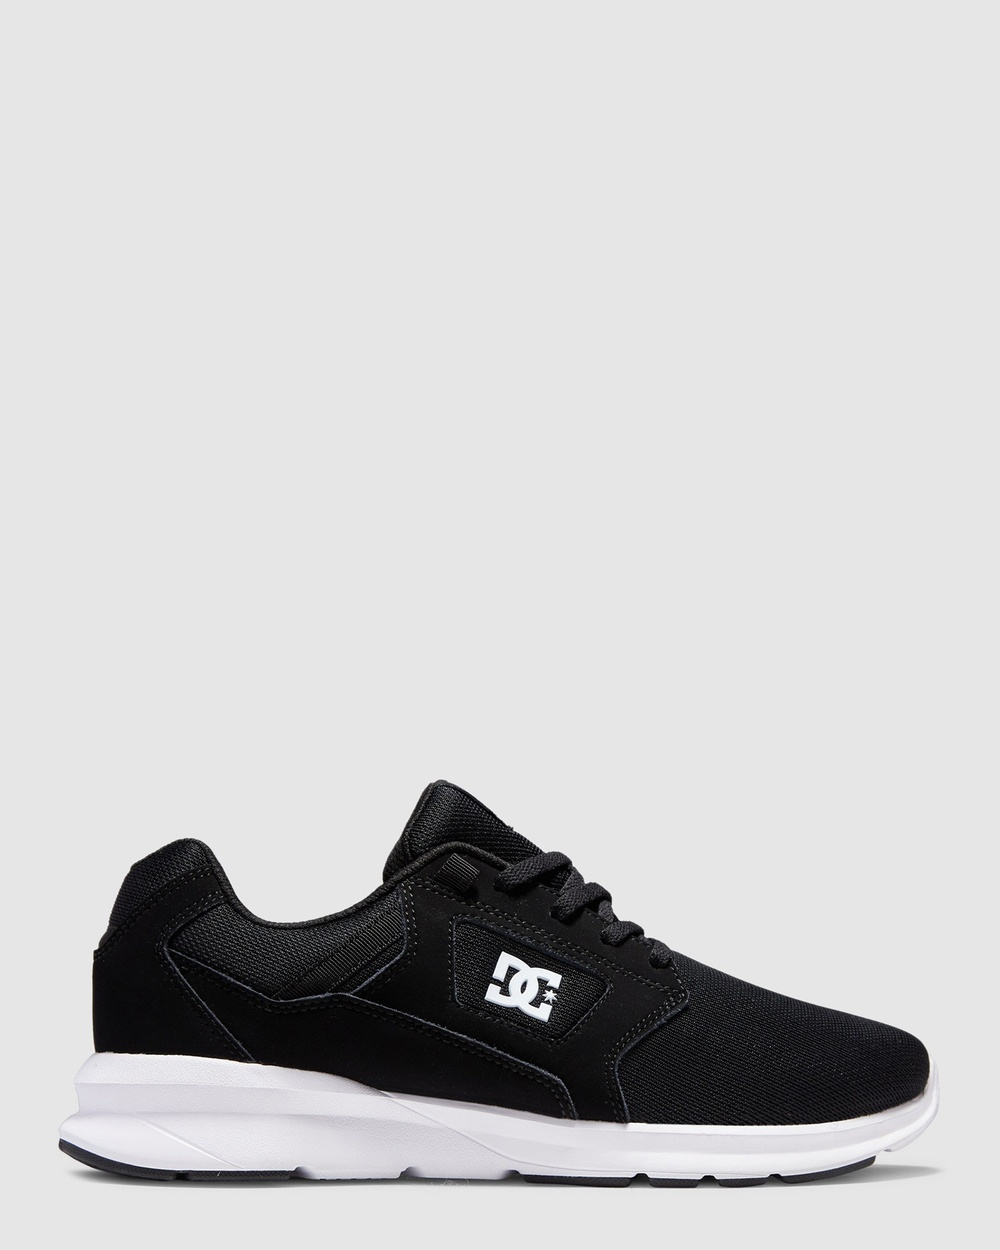 DC Shoes Mens Skyline Lightweight Shoe Sneakers Black/White